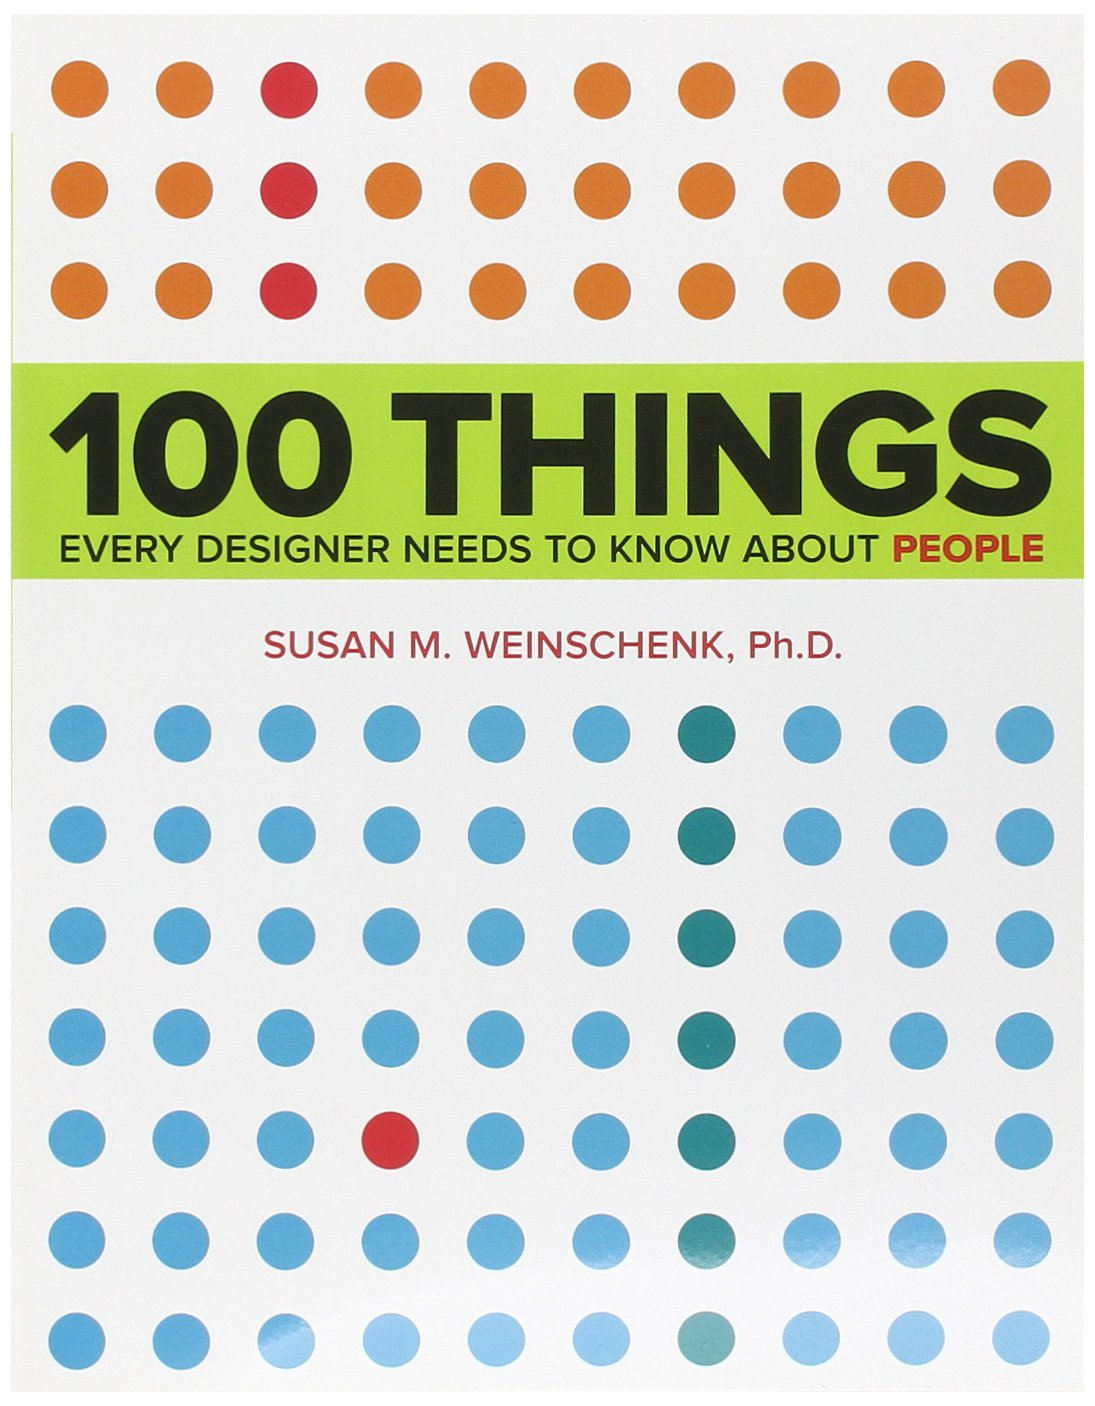 100 Things Designers Should Know About People